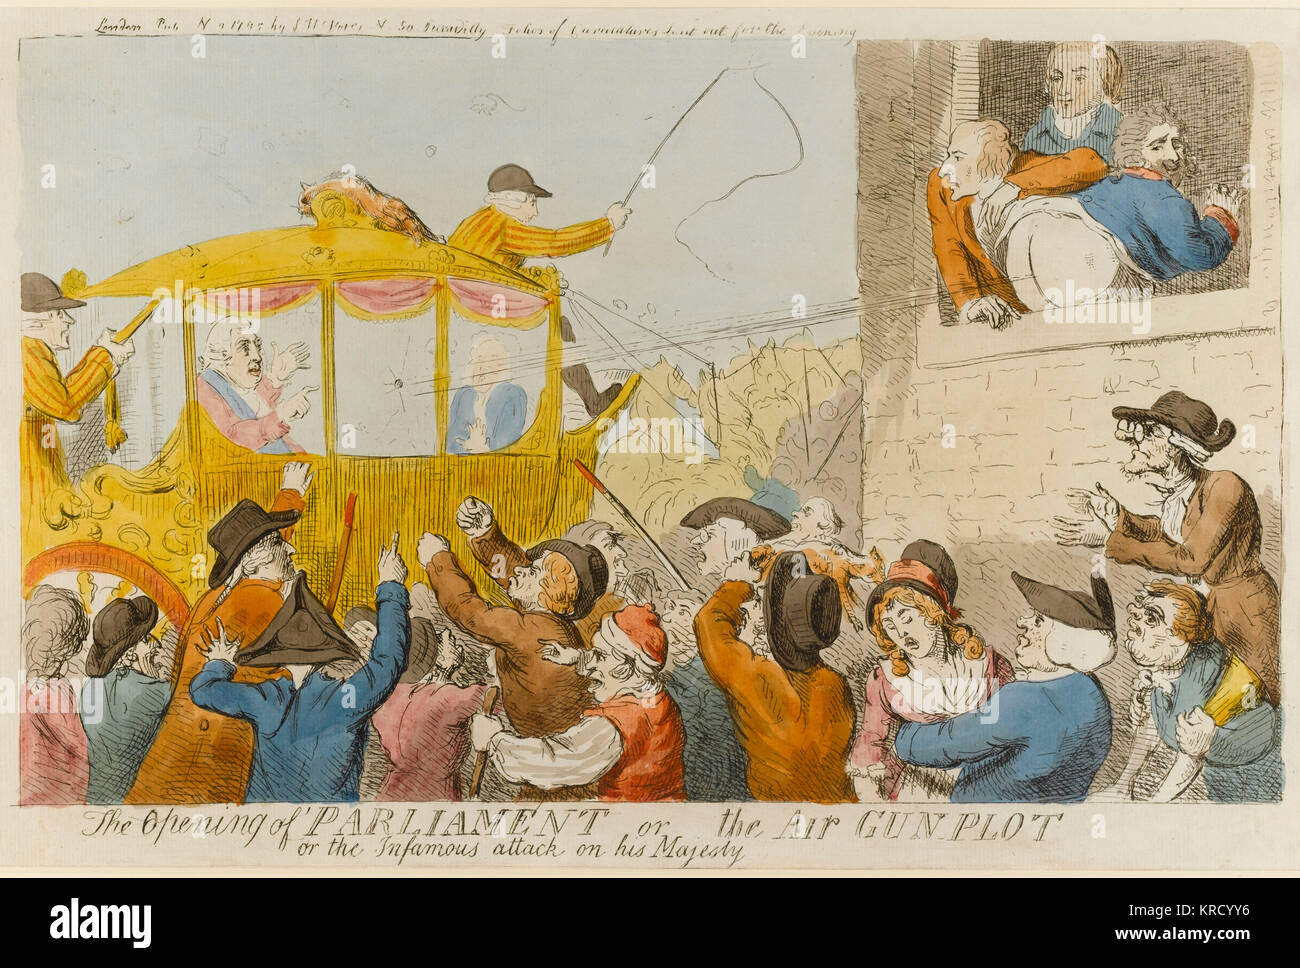 Cartoon, The opening of Parliament or the air gun plot or the infamous attack on his Majesty.  This print recalls - Stock Image